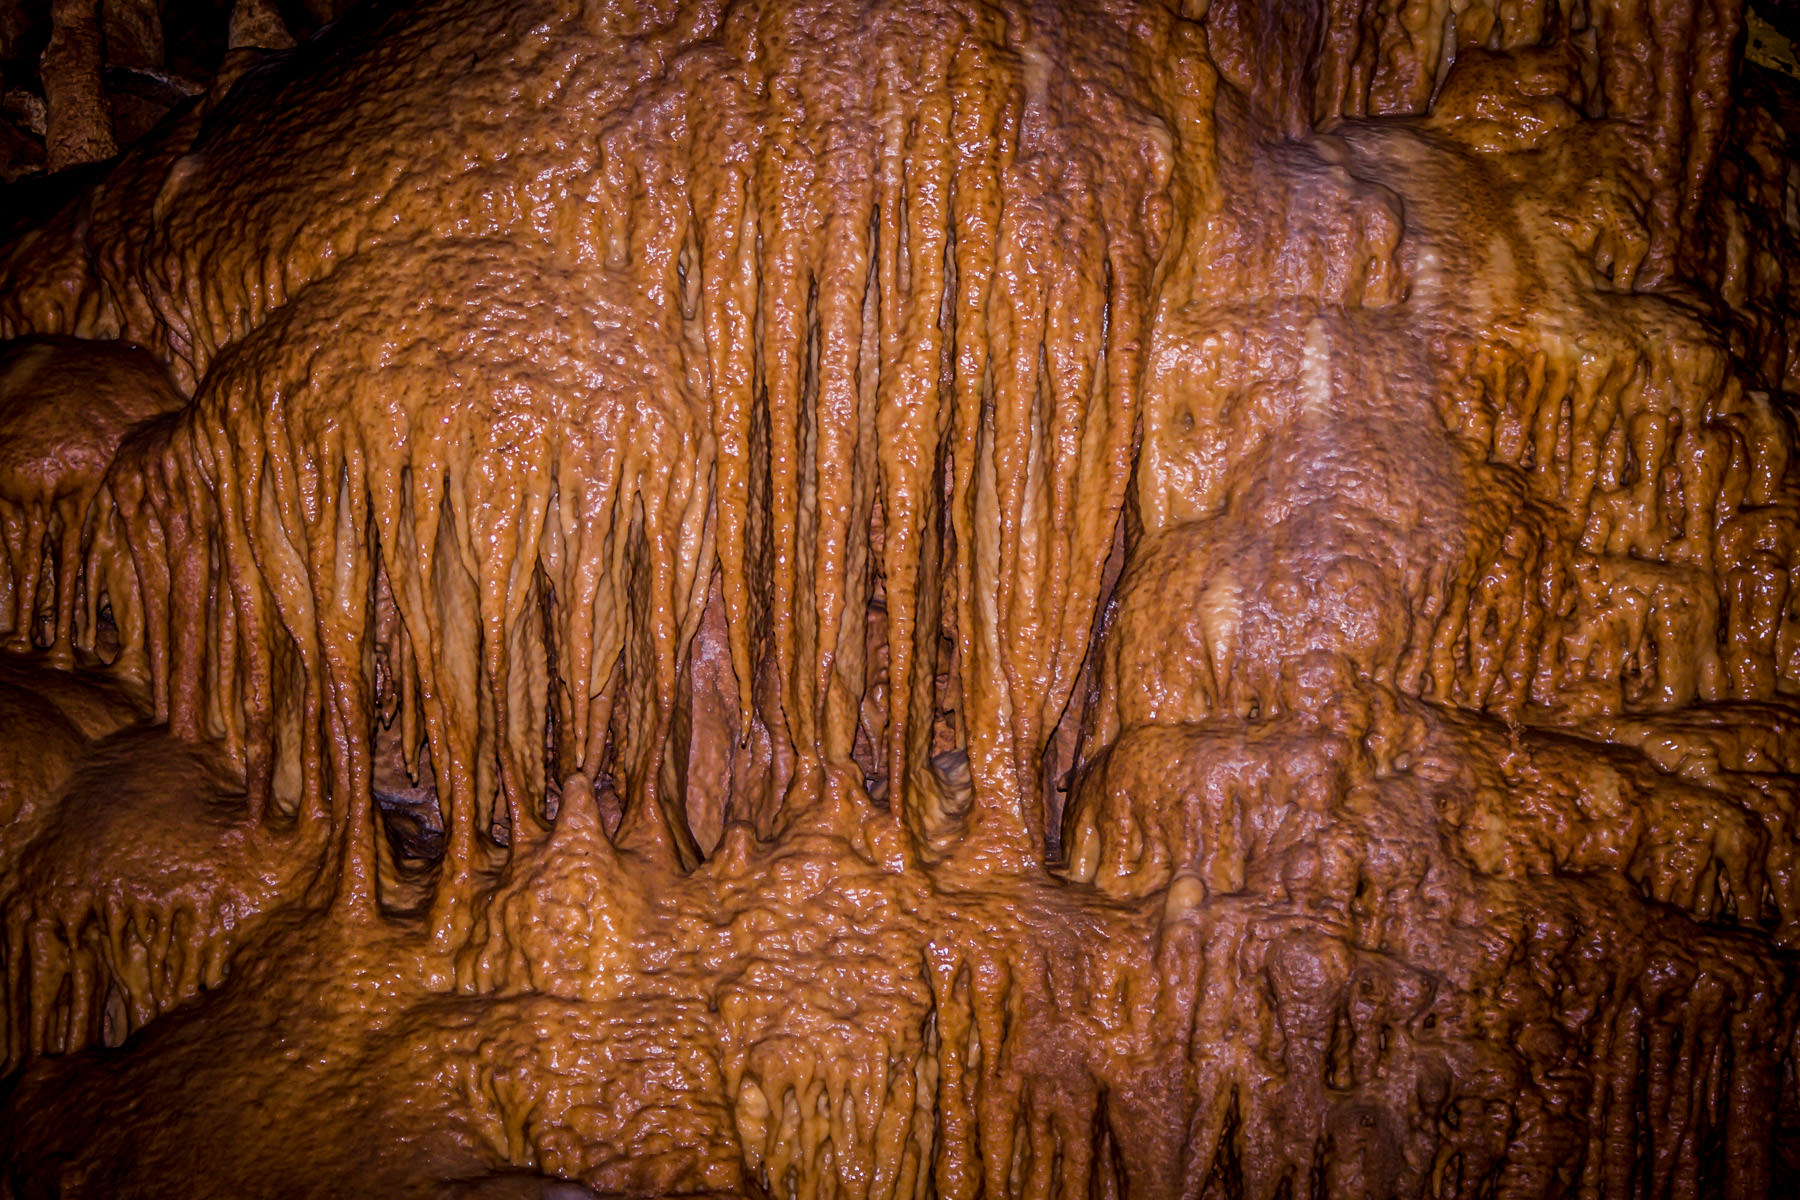 Detail of rock formations from Inner Space Cavern, Georgetown, Texas.